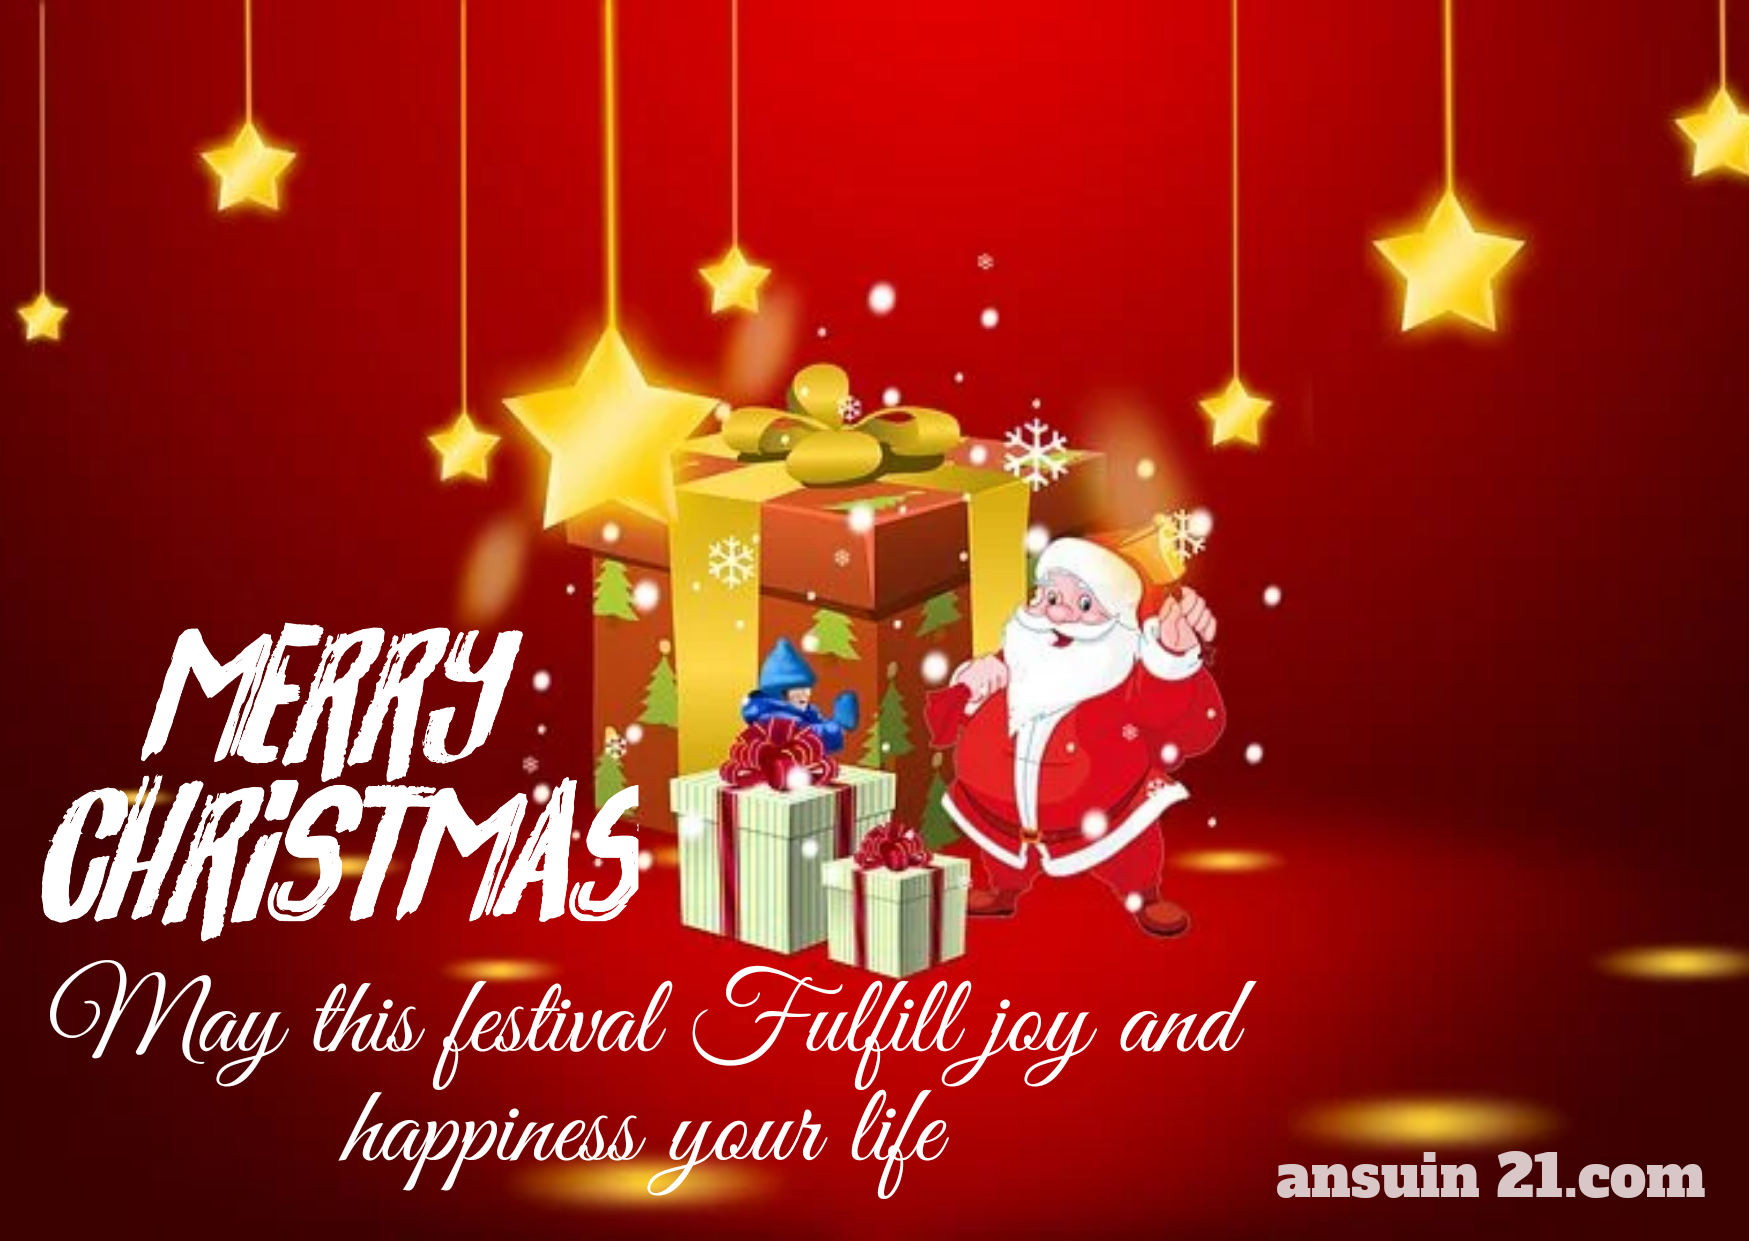 Merry Christmas Wishes, Images, Status, Quotes, HD Wallpaper